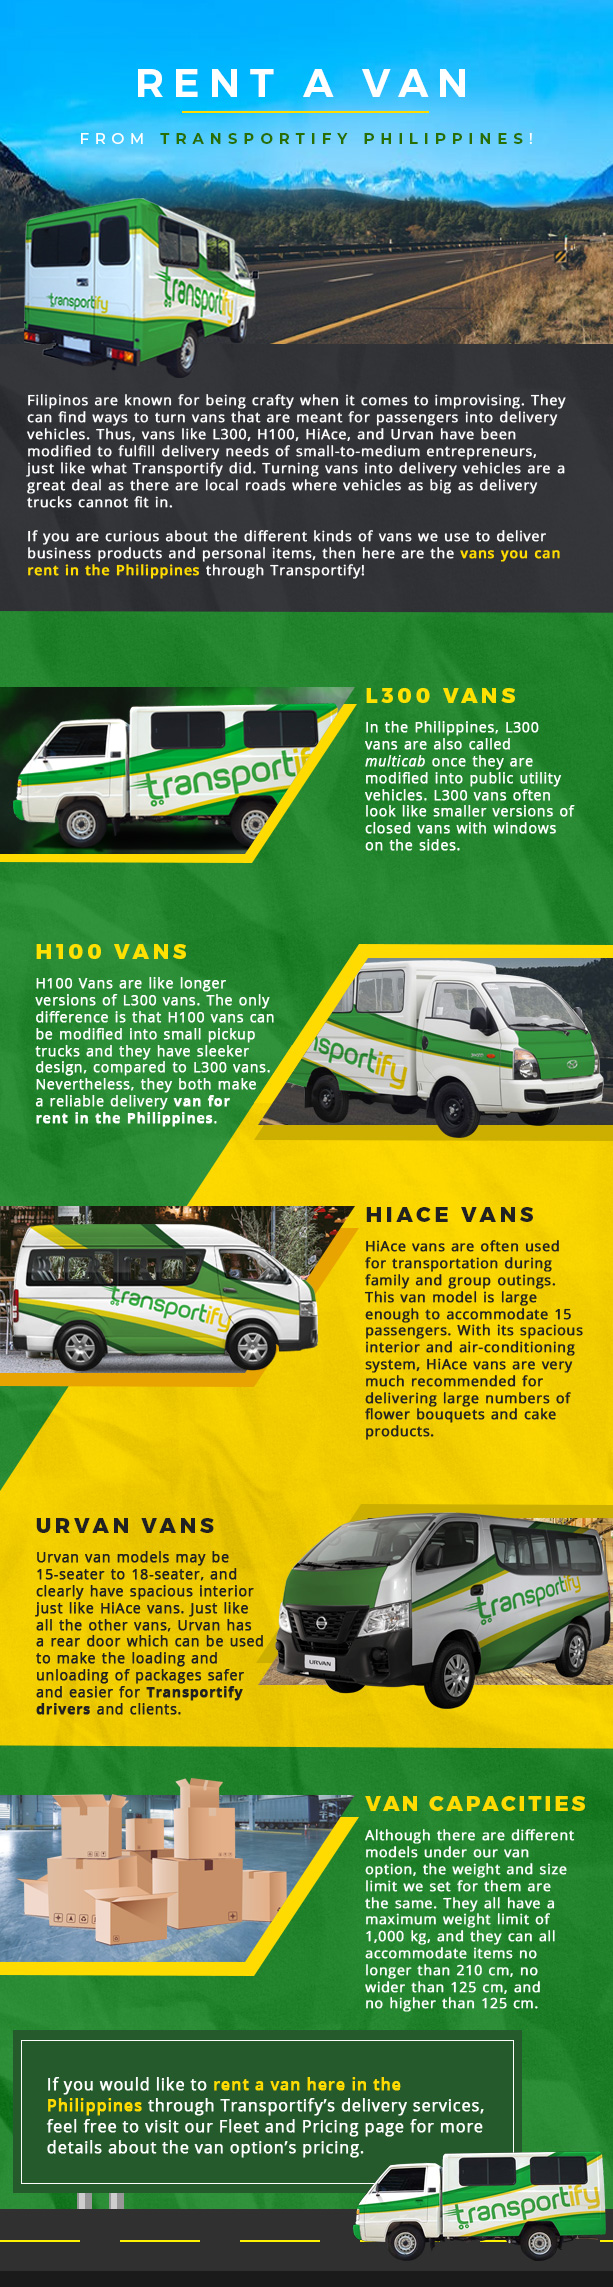 Rent a Van from Transportify Philippines Infographics (1)